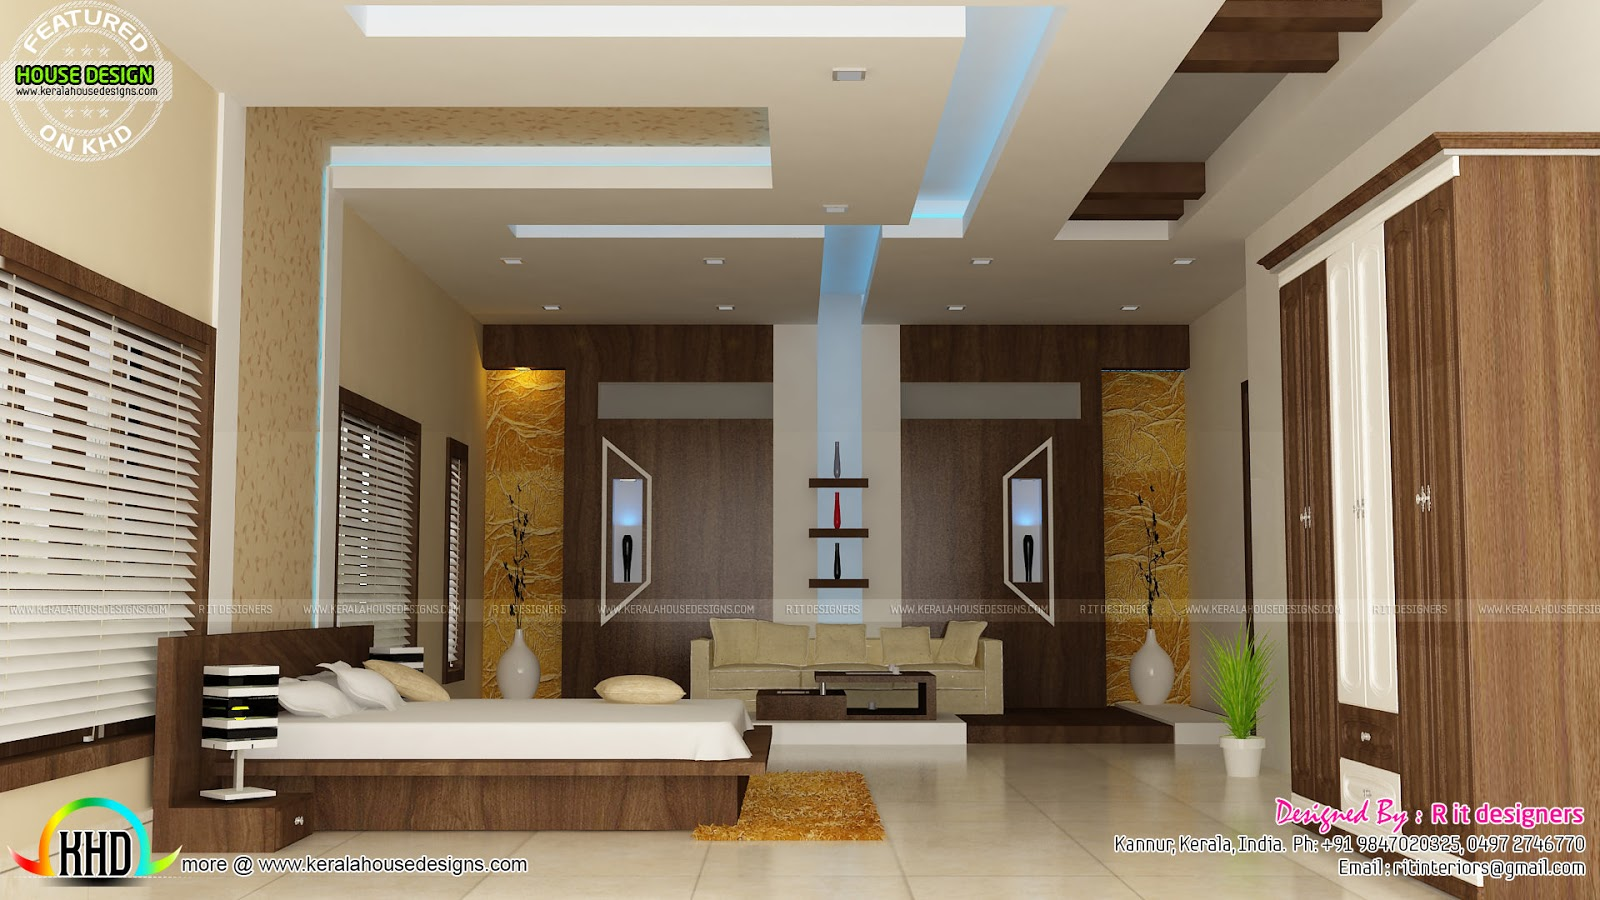 House interiors by r it designers kerala home design and for Kerala model interior designs